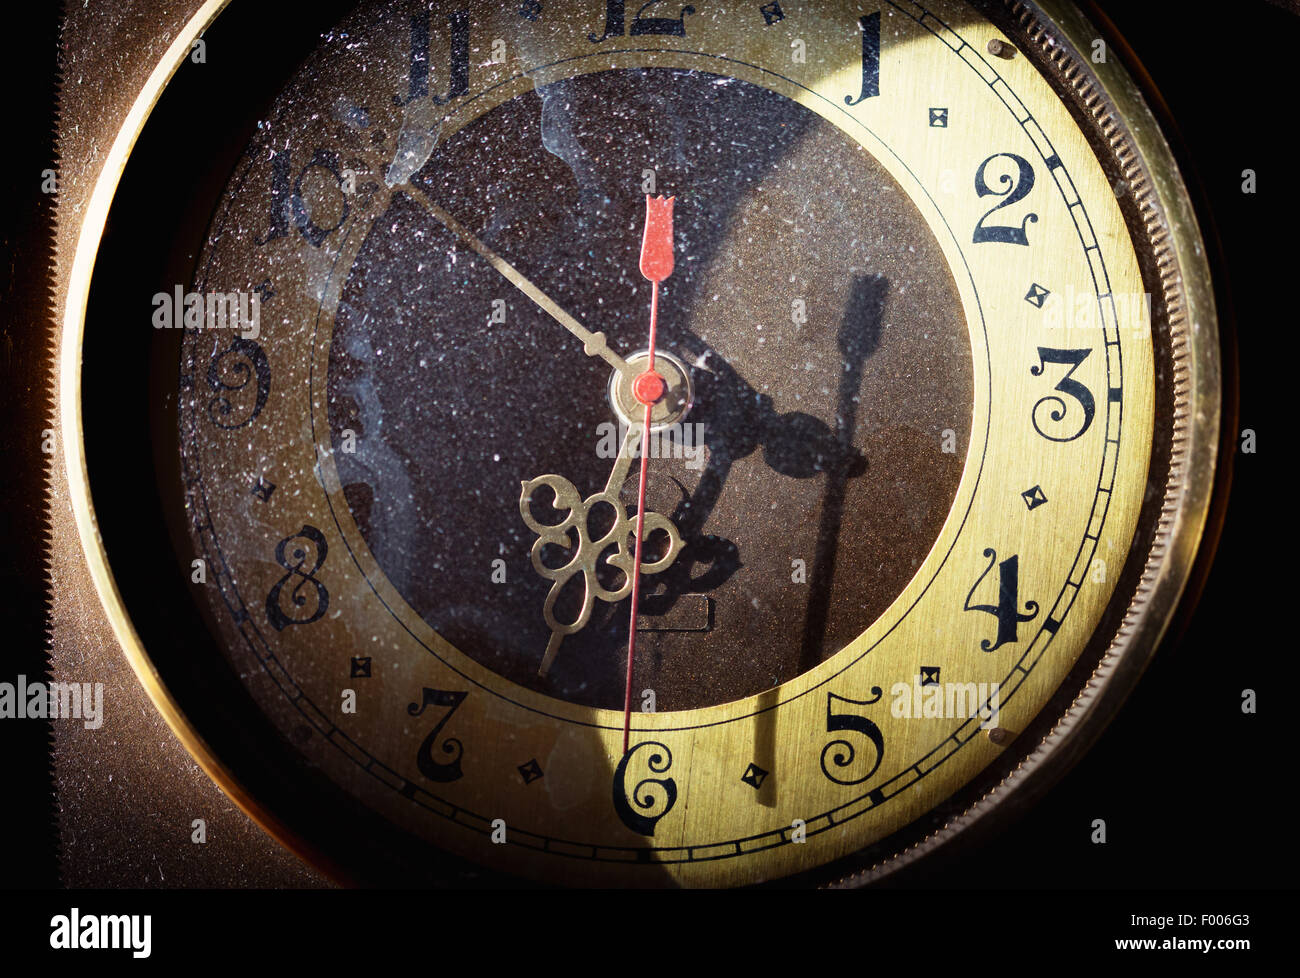 Vintage grunge clock face with vintage roman numerals - Stock Image